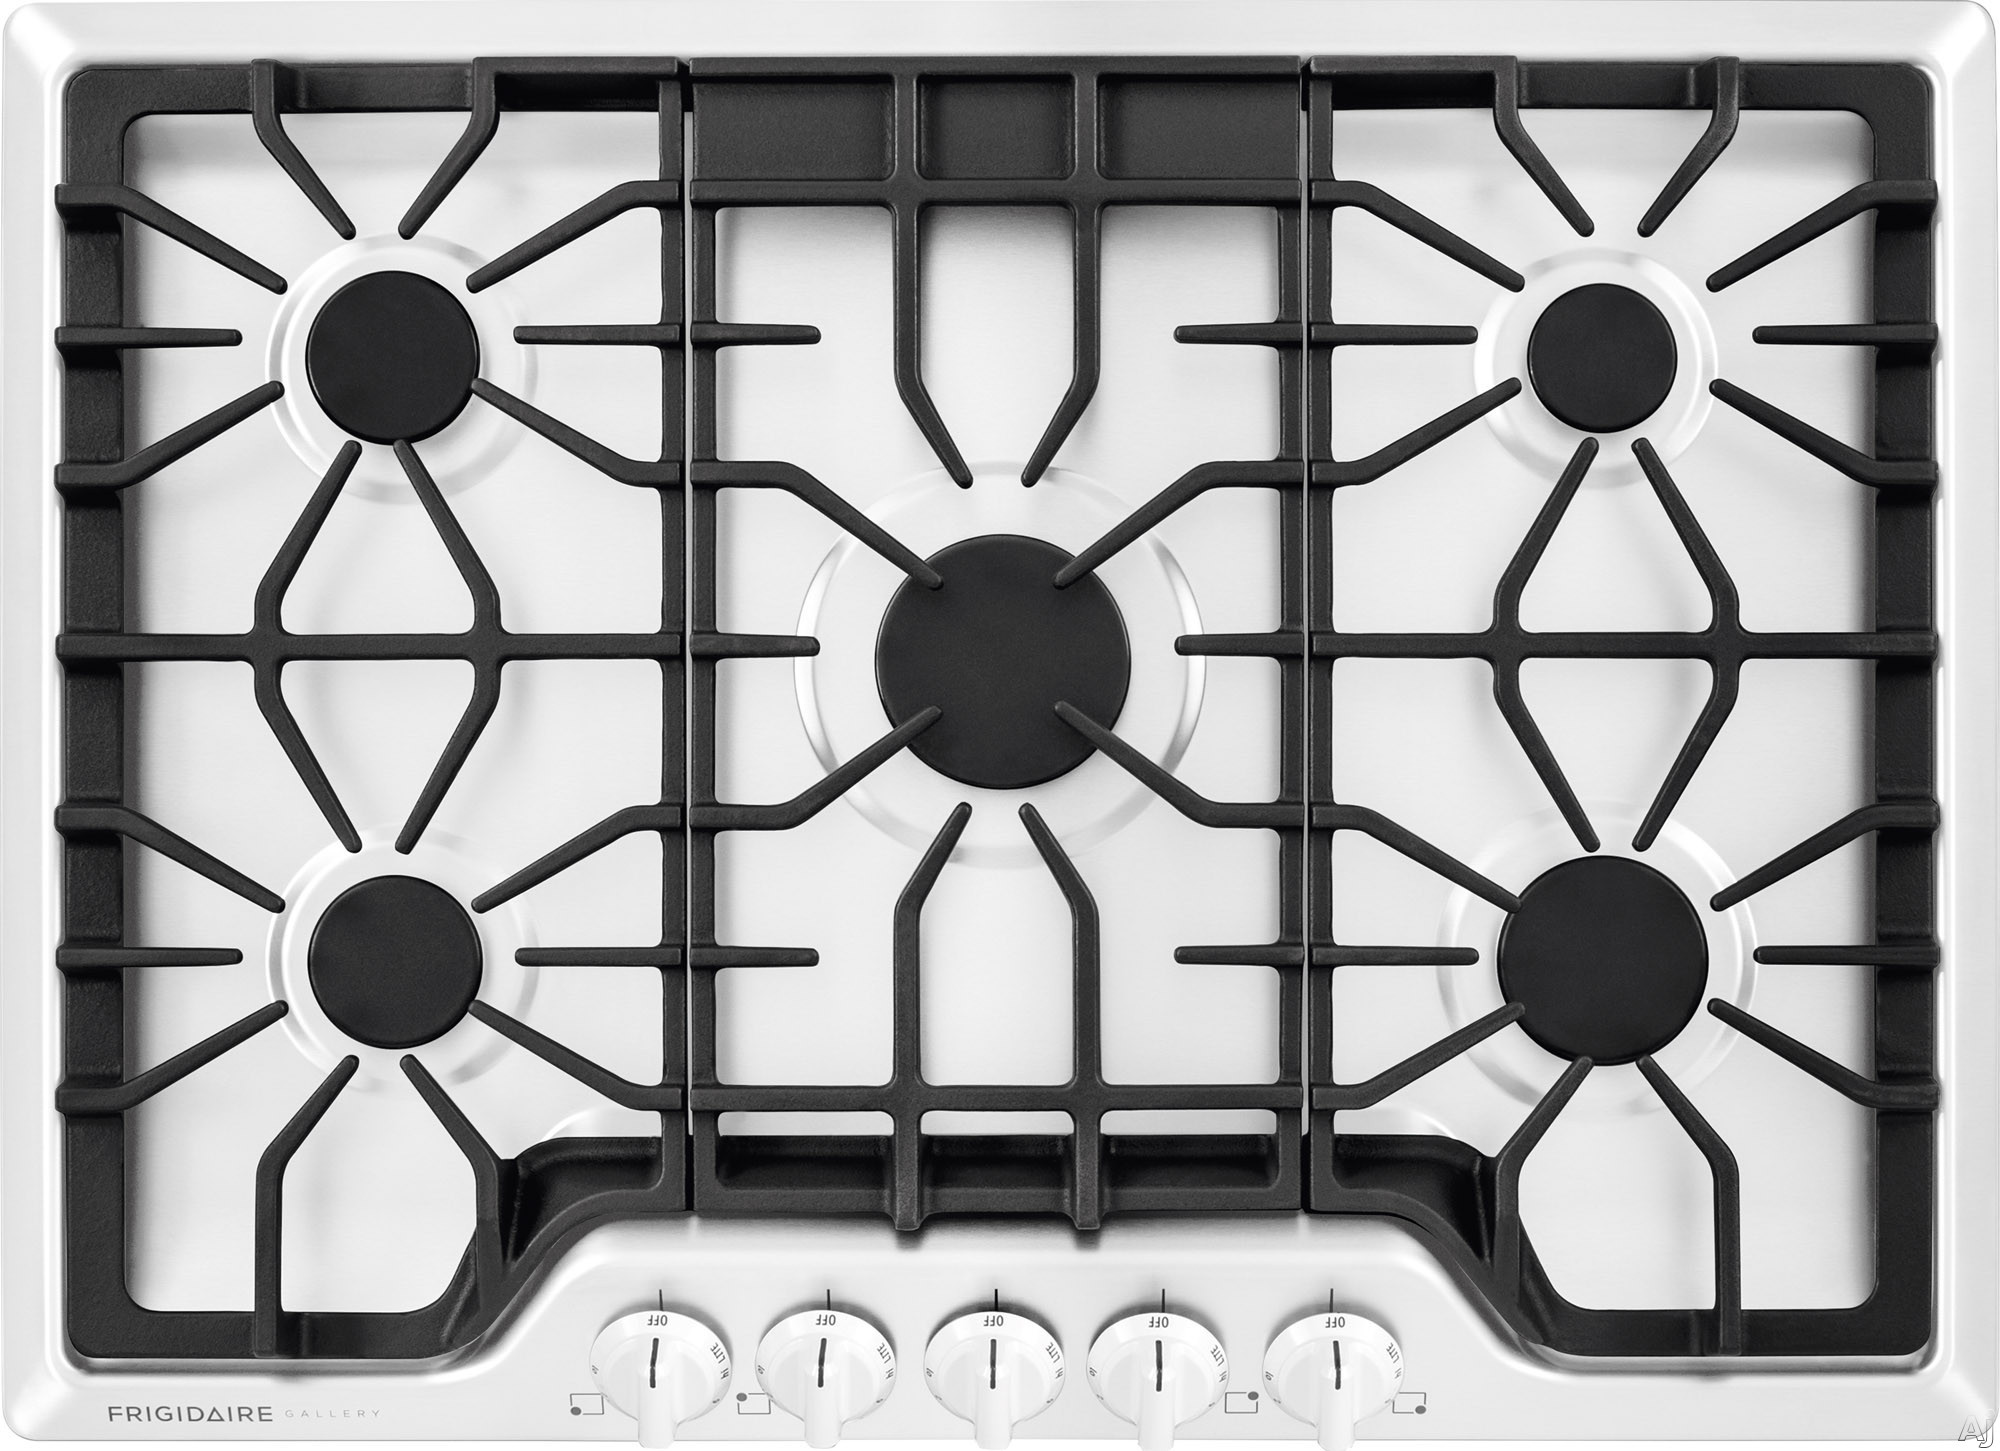 Frigidaire Gallery Series FGGC3047QW 30 Inch Gas Cooktop with LP Conversion Option, Seamless Recessed Burners, SpillSafe ®, Angled Front Controls, Continuous Iron Grates, Low Simmer Burner and ADA Compliant